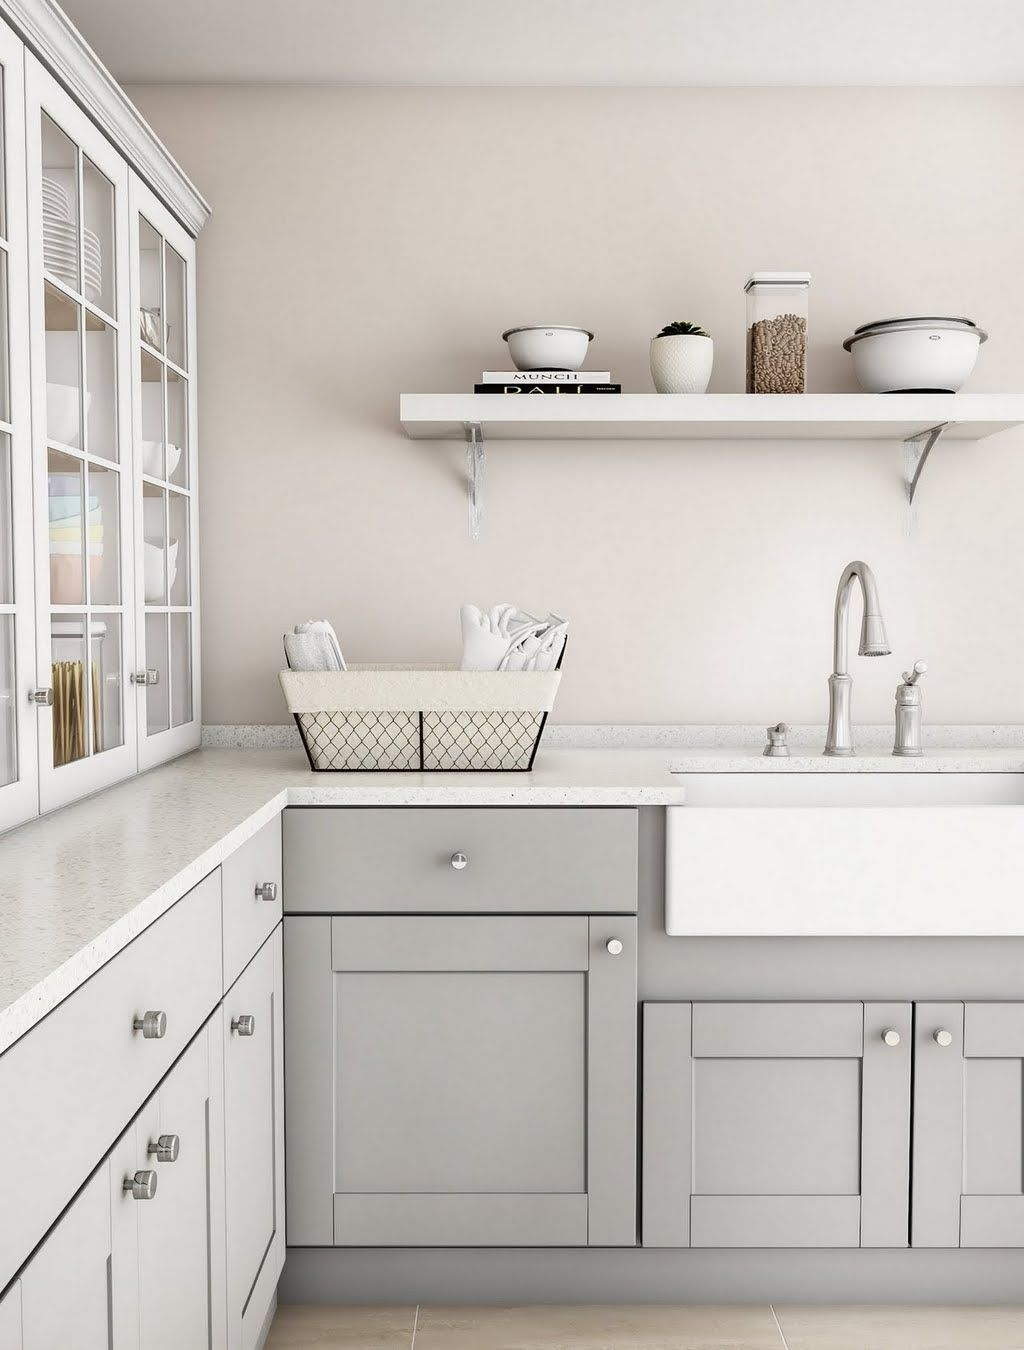 Shop Our Laundry Room Department To Customize Your Elegant Gray